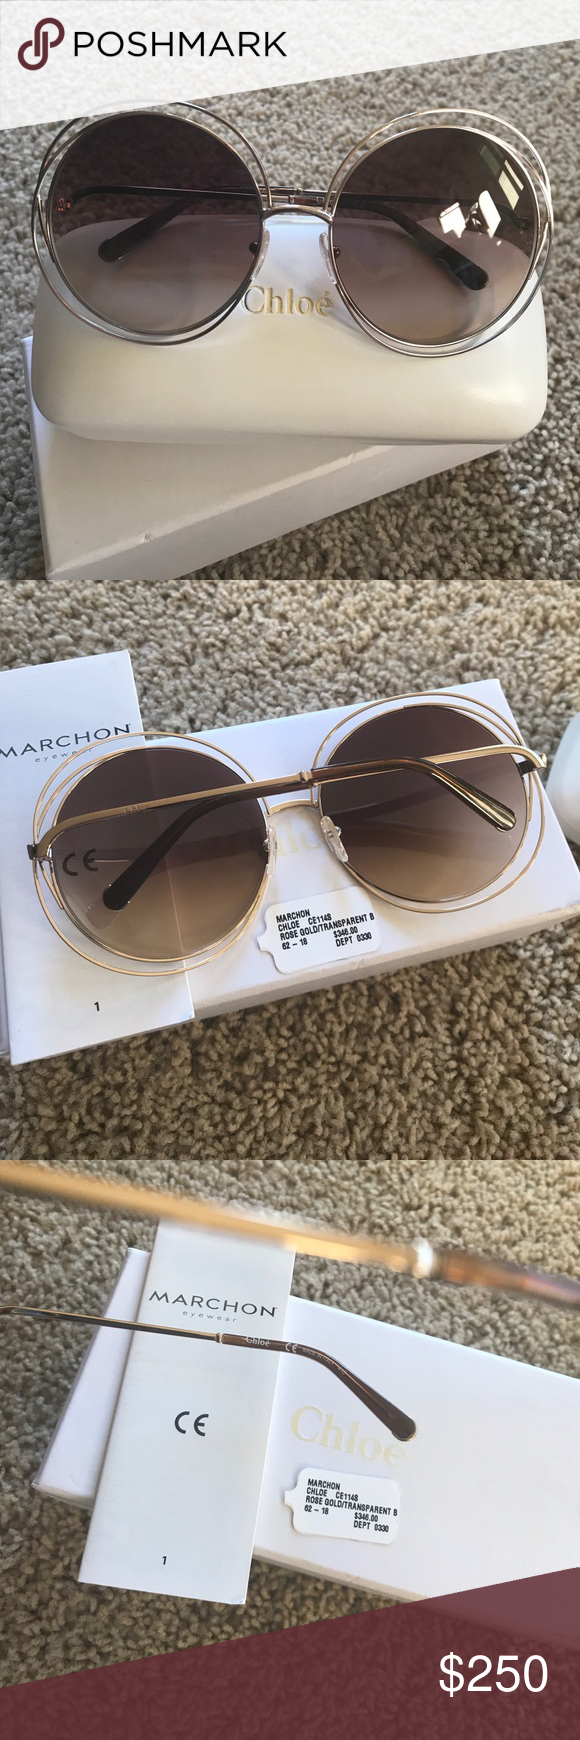 6758a3ce0938 Authentic Chloe Carlina Round Oversized Sunglasses Chloe sunglasses. Case